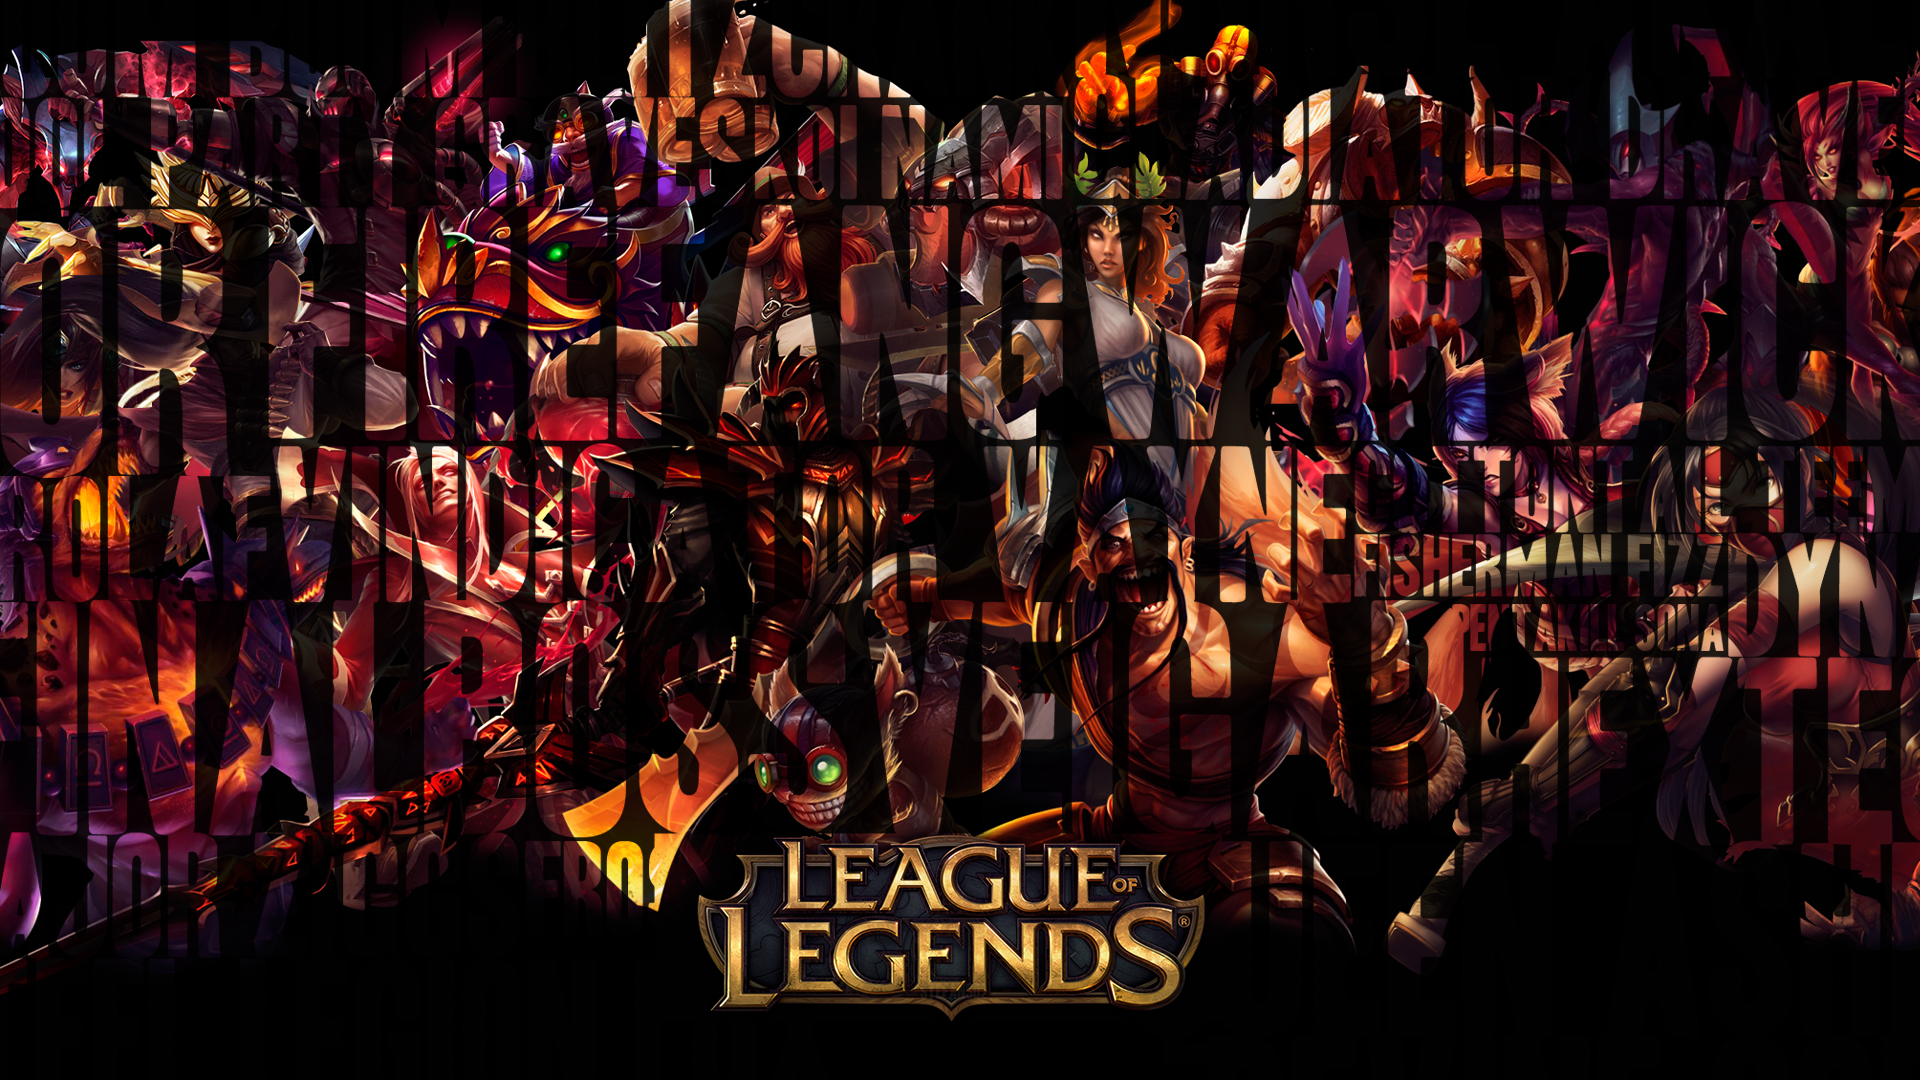 45 League Of Legends Hd Wallpapers On Wallpapersafari